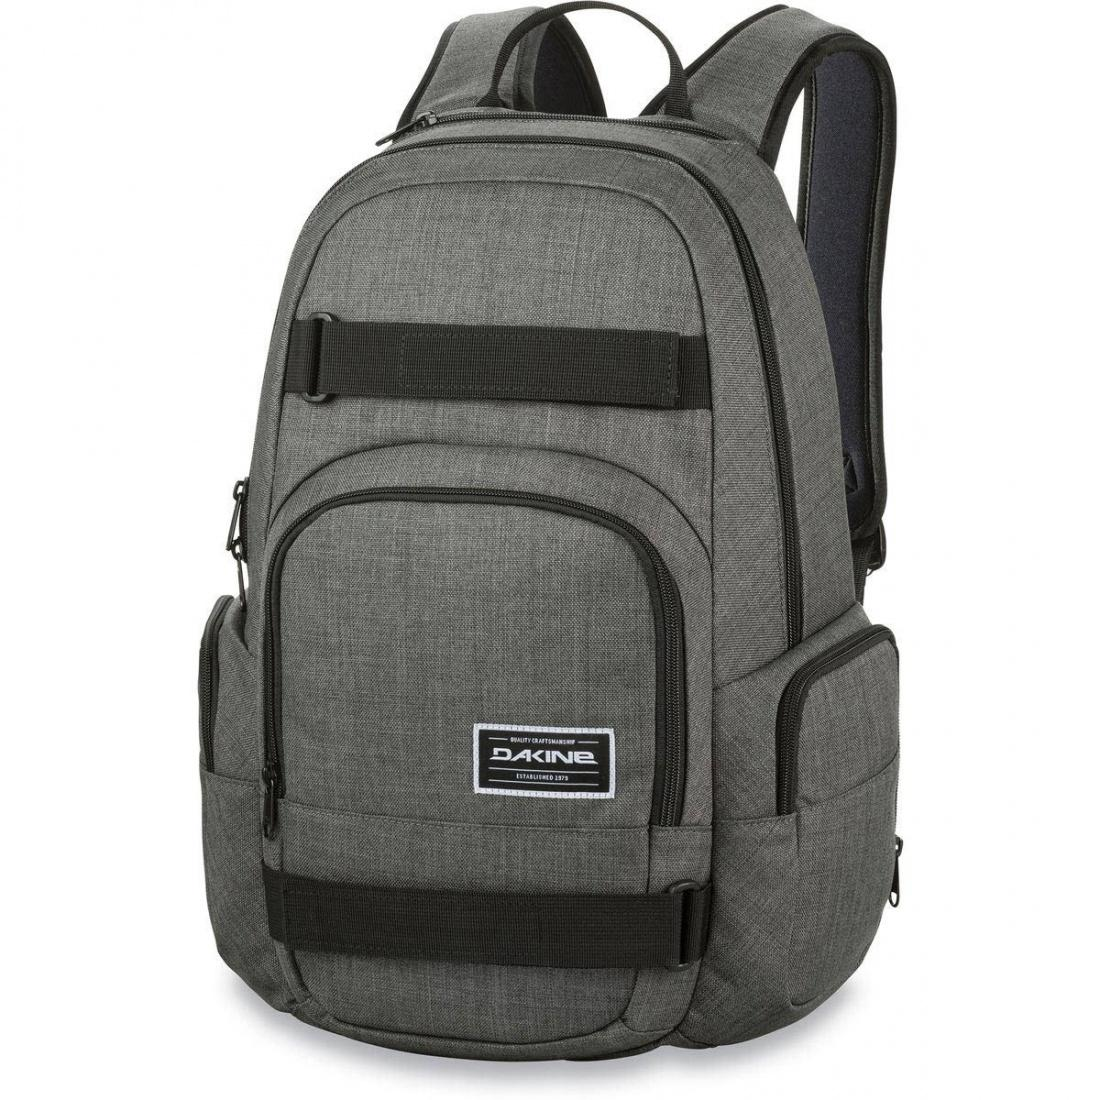 Фото - DAKINE Рюкзак Dakine Atlas Carbon 25 л пенал dakine lunch box 5 l augusta